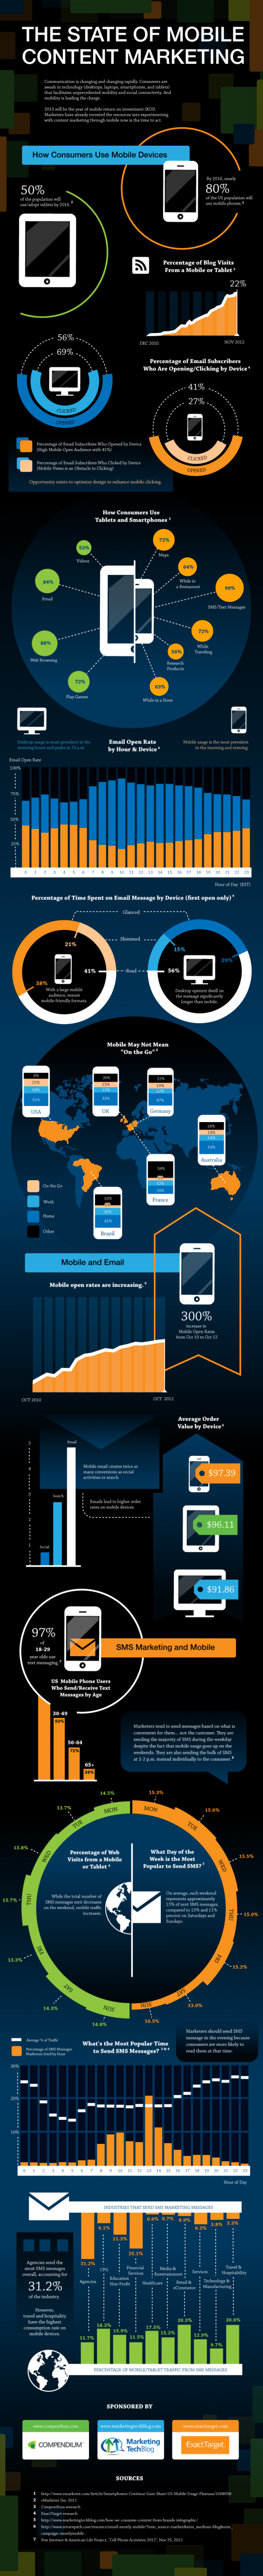 The State of Mobile Content Marketing